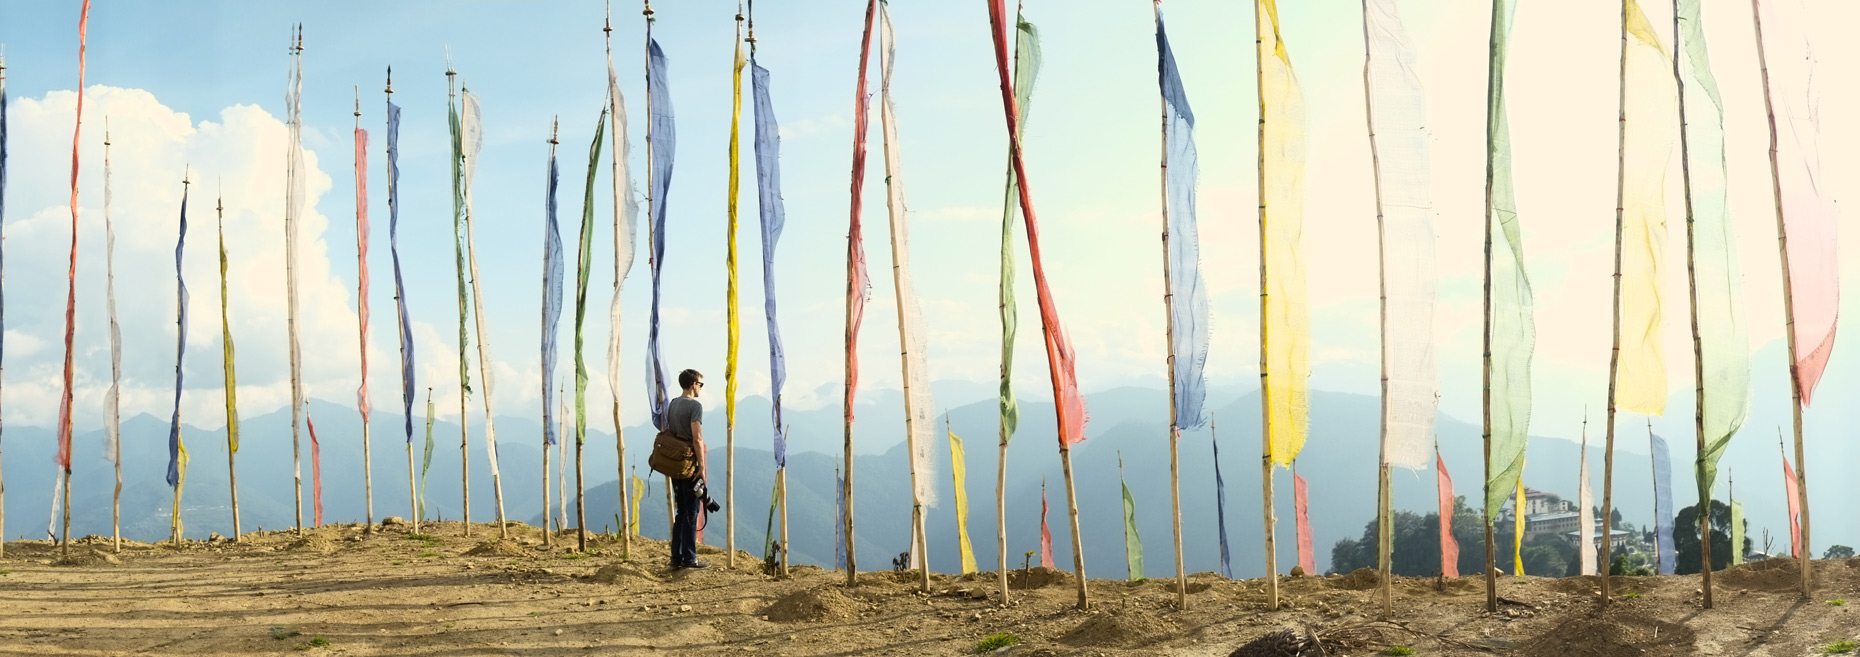 Cerimonial flags on ridge in Bhutan/Steve Mason Photography